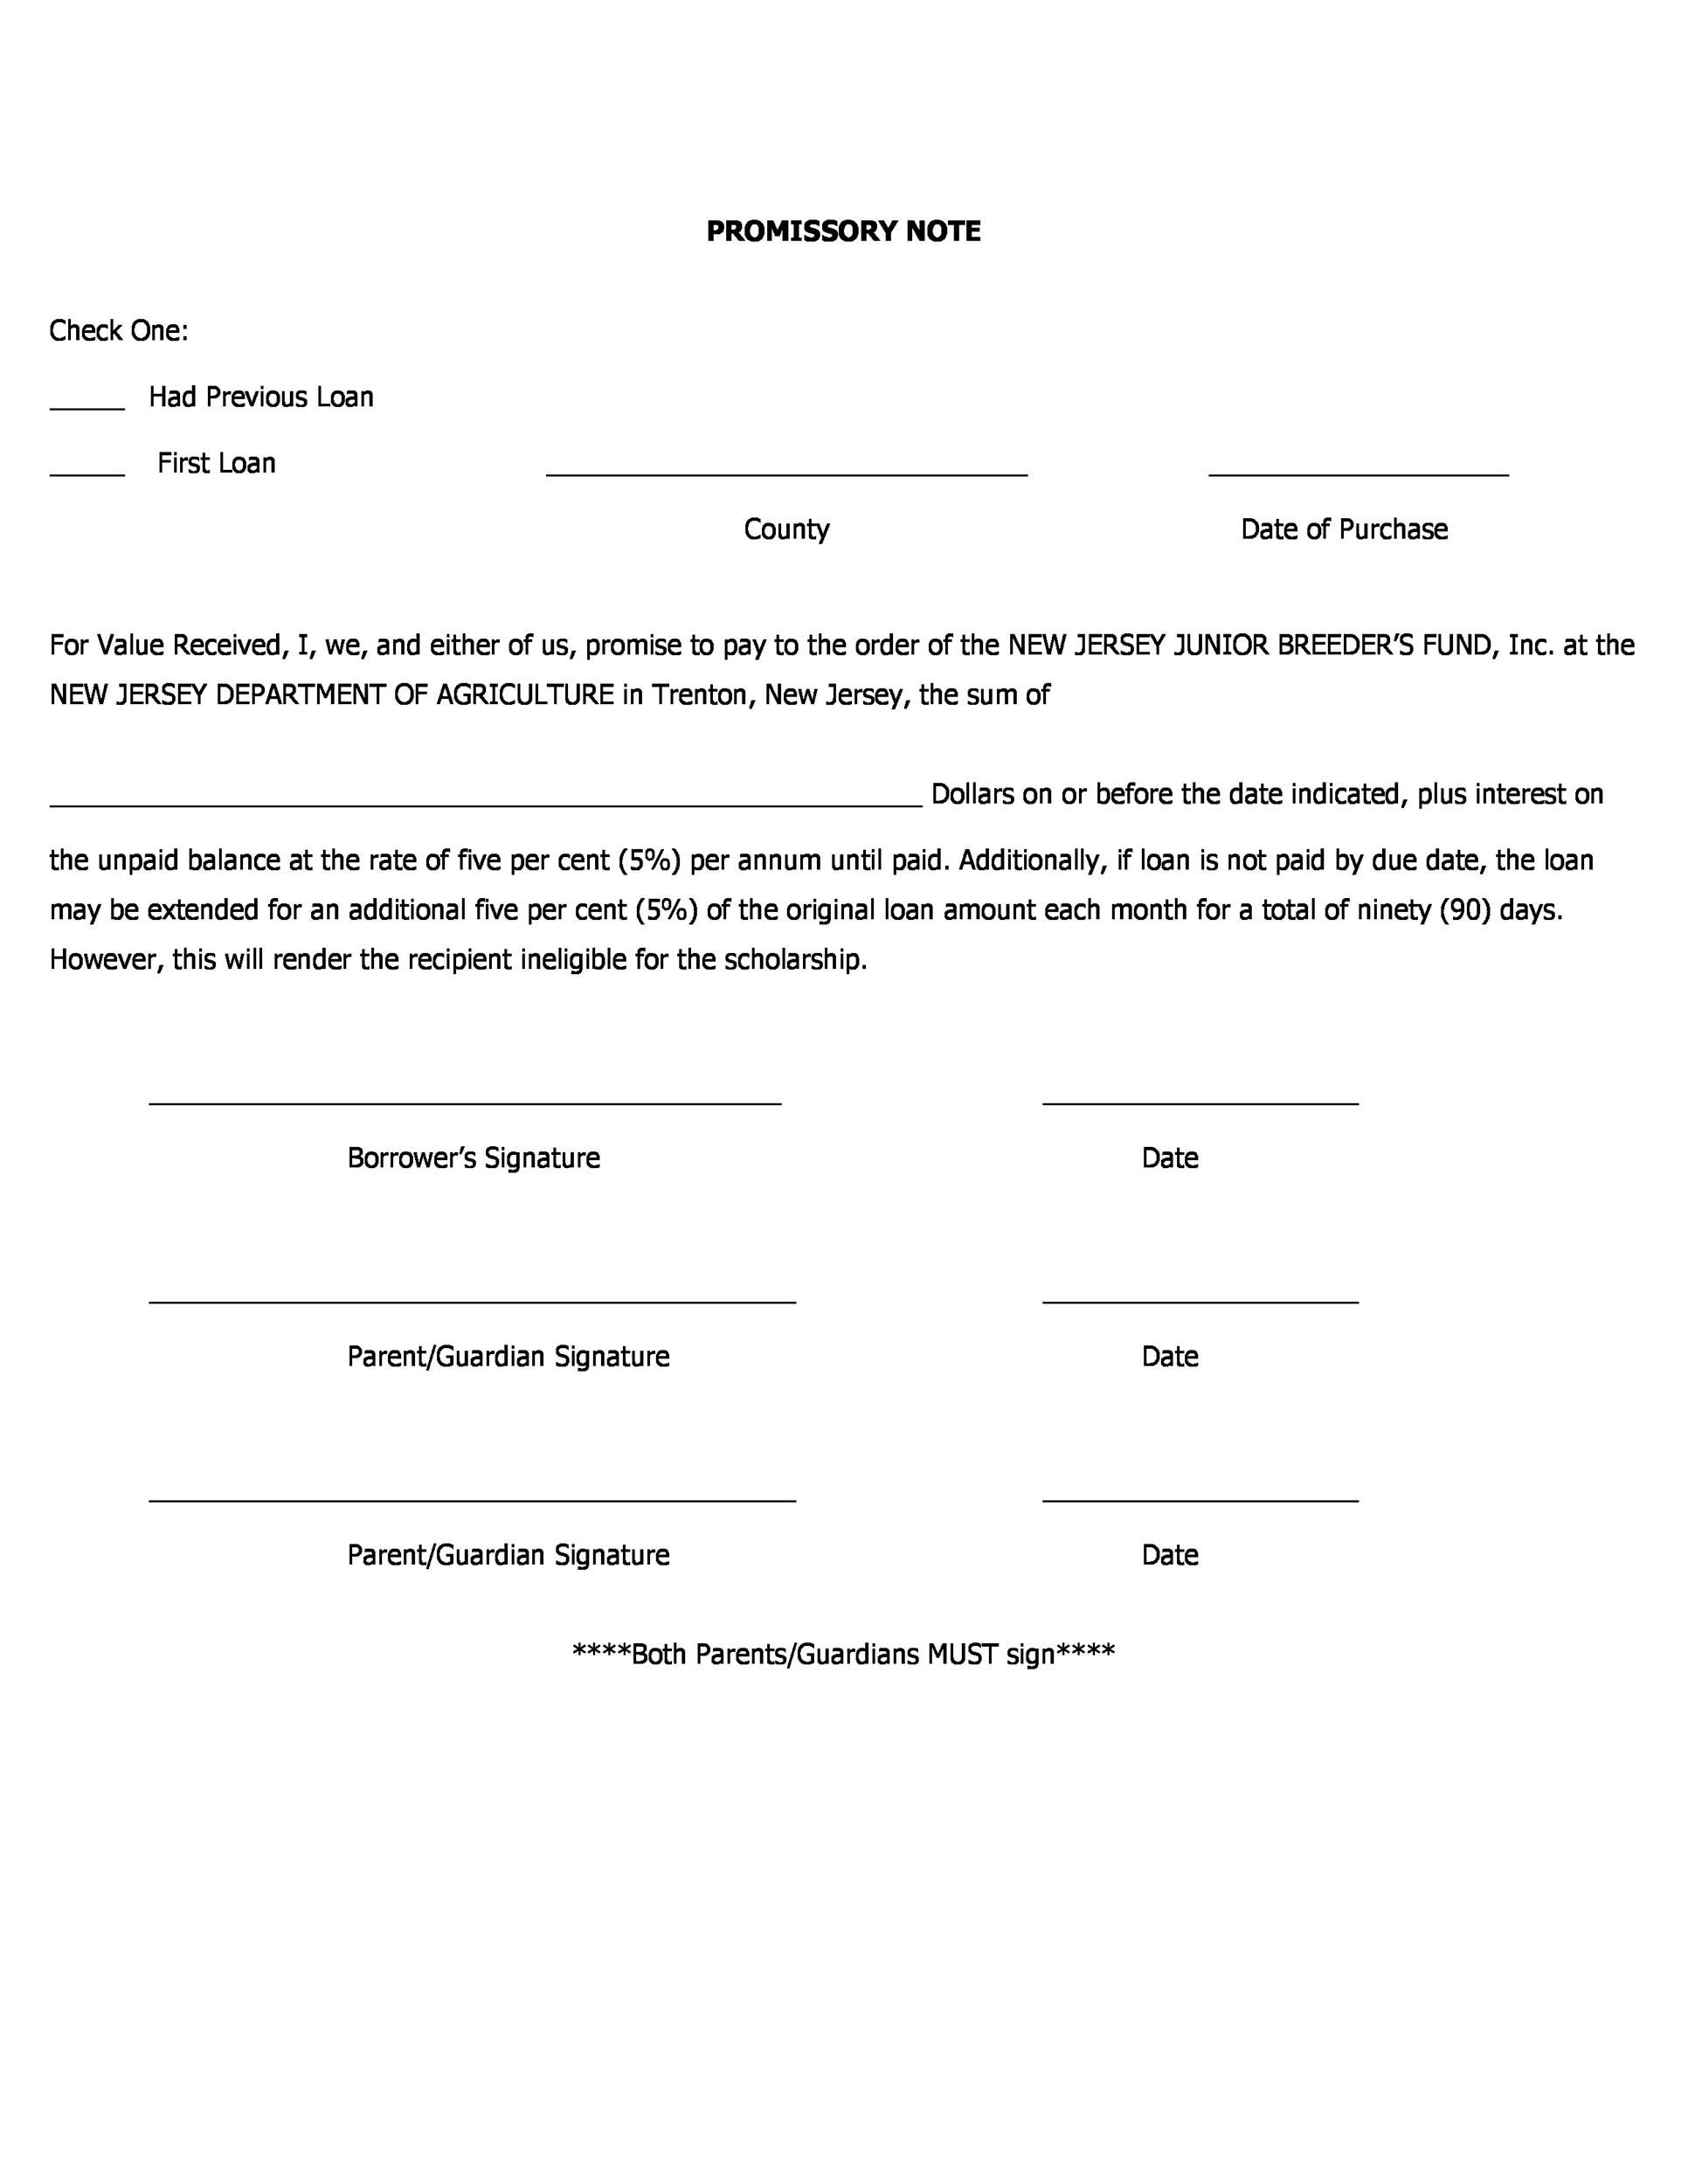 Elegant Printable Promissory Note Template 31 To Promissory Note Simple